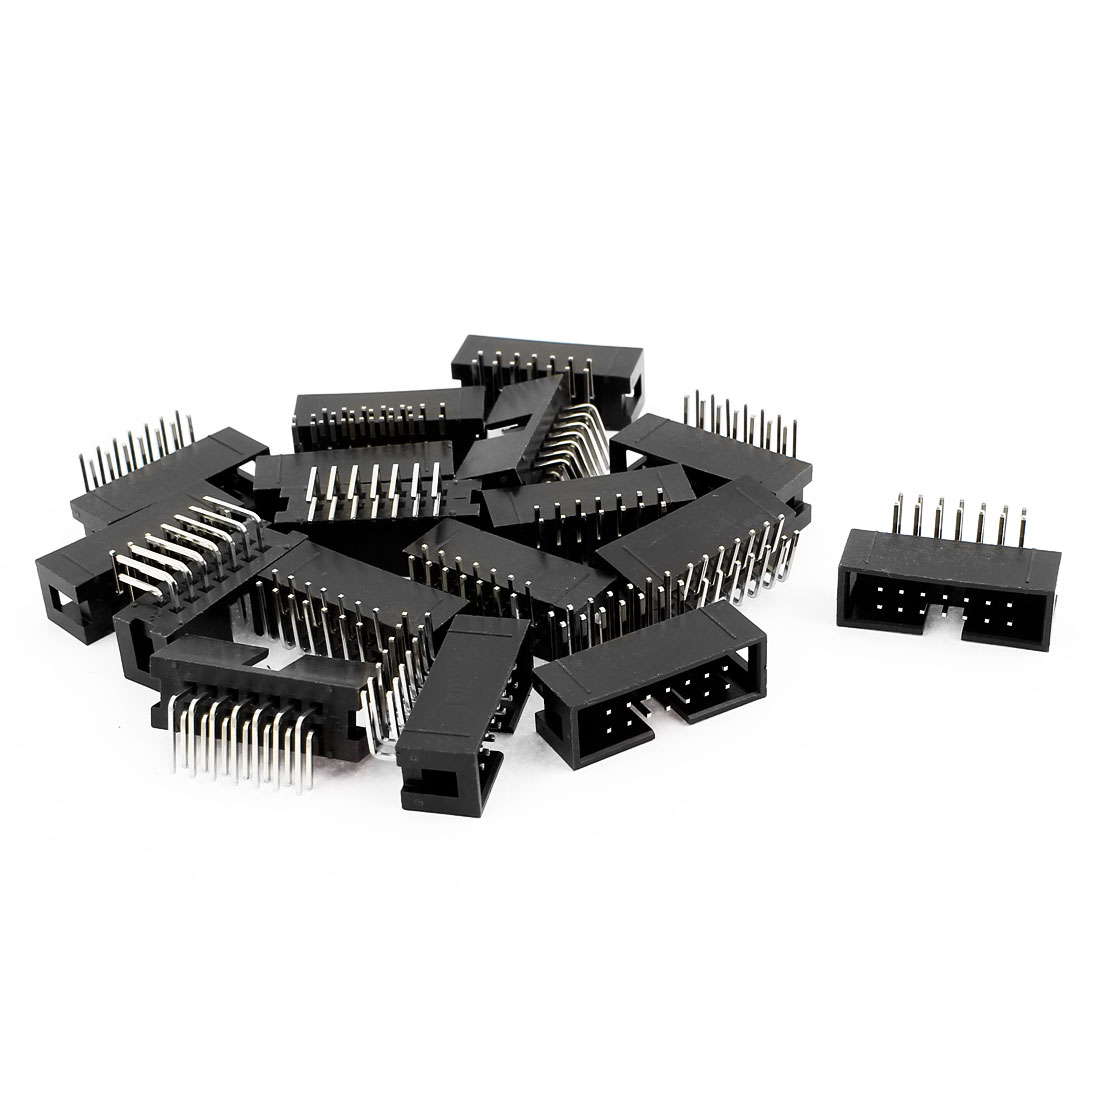 IDC Right Angled Box Header Connector 14 Way Pitch 2.54mm 17 Pcs